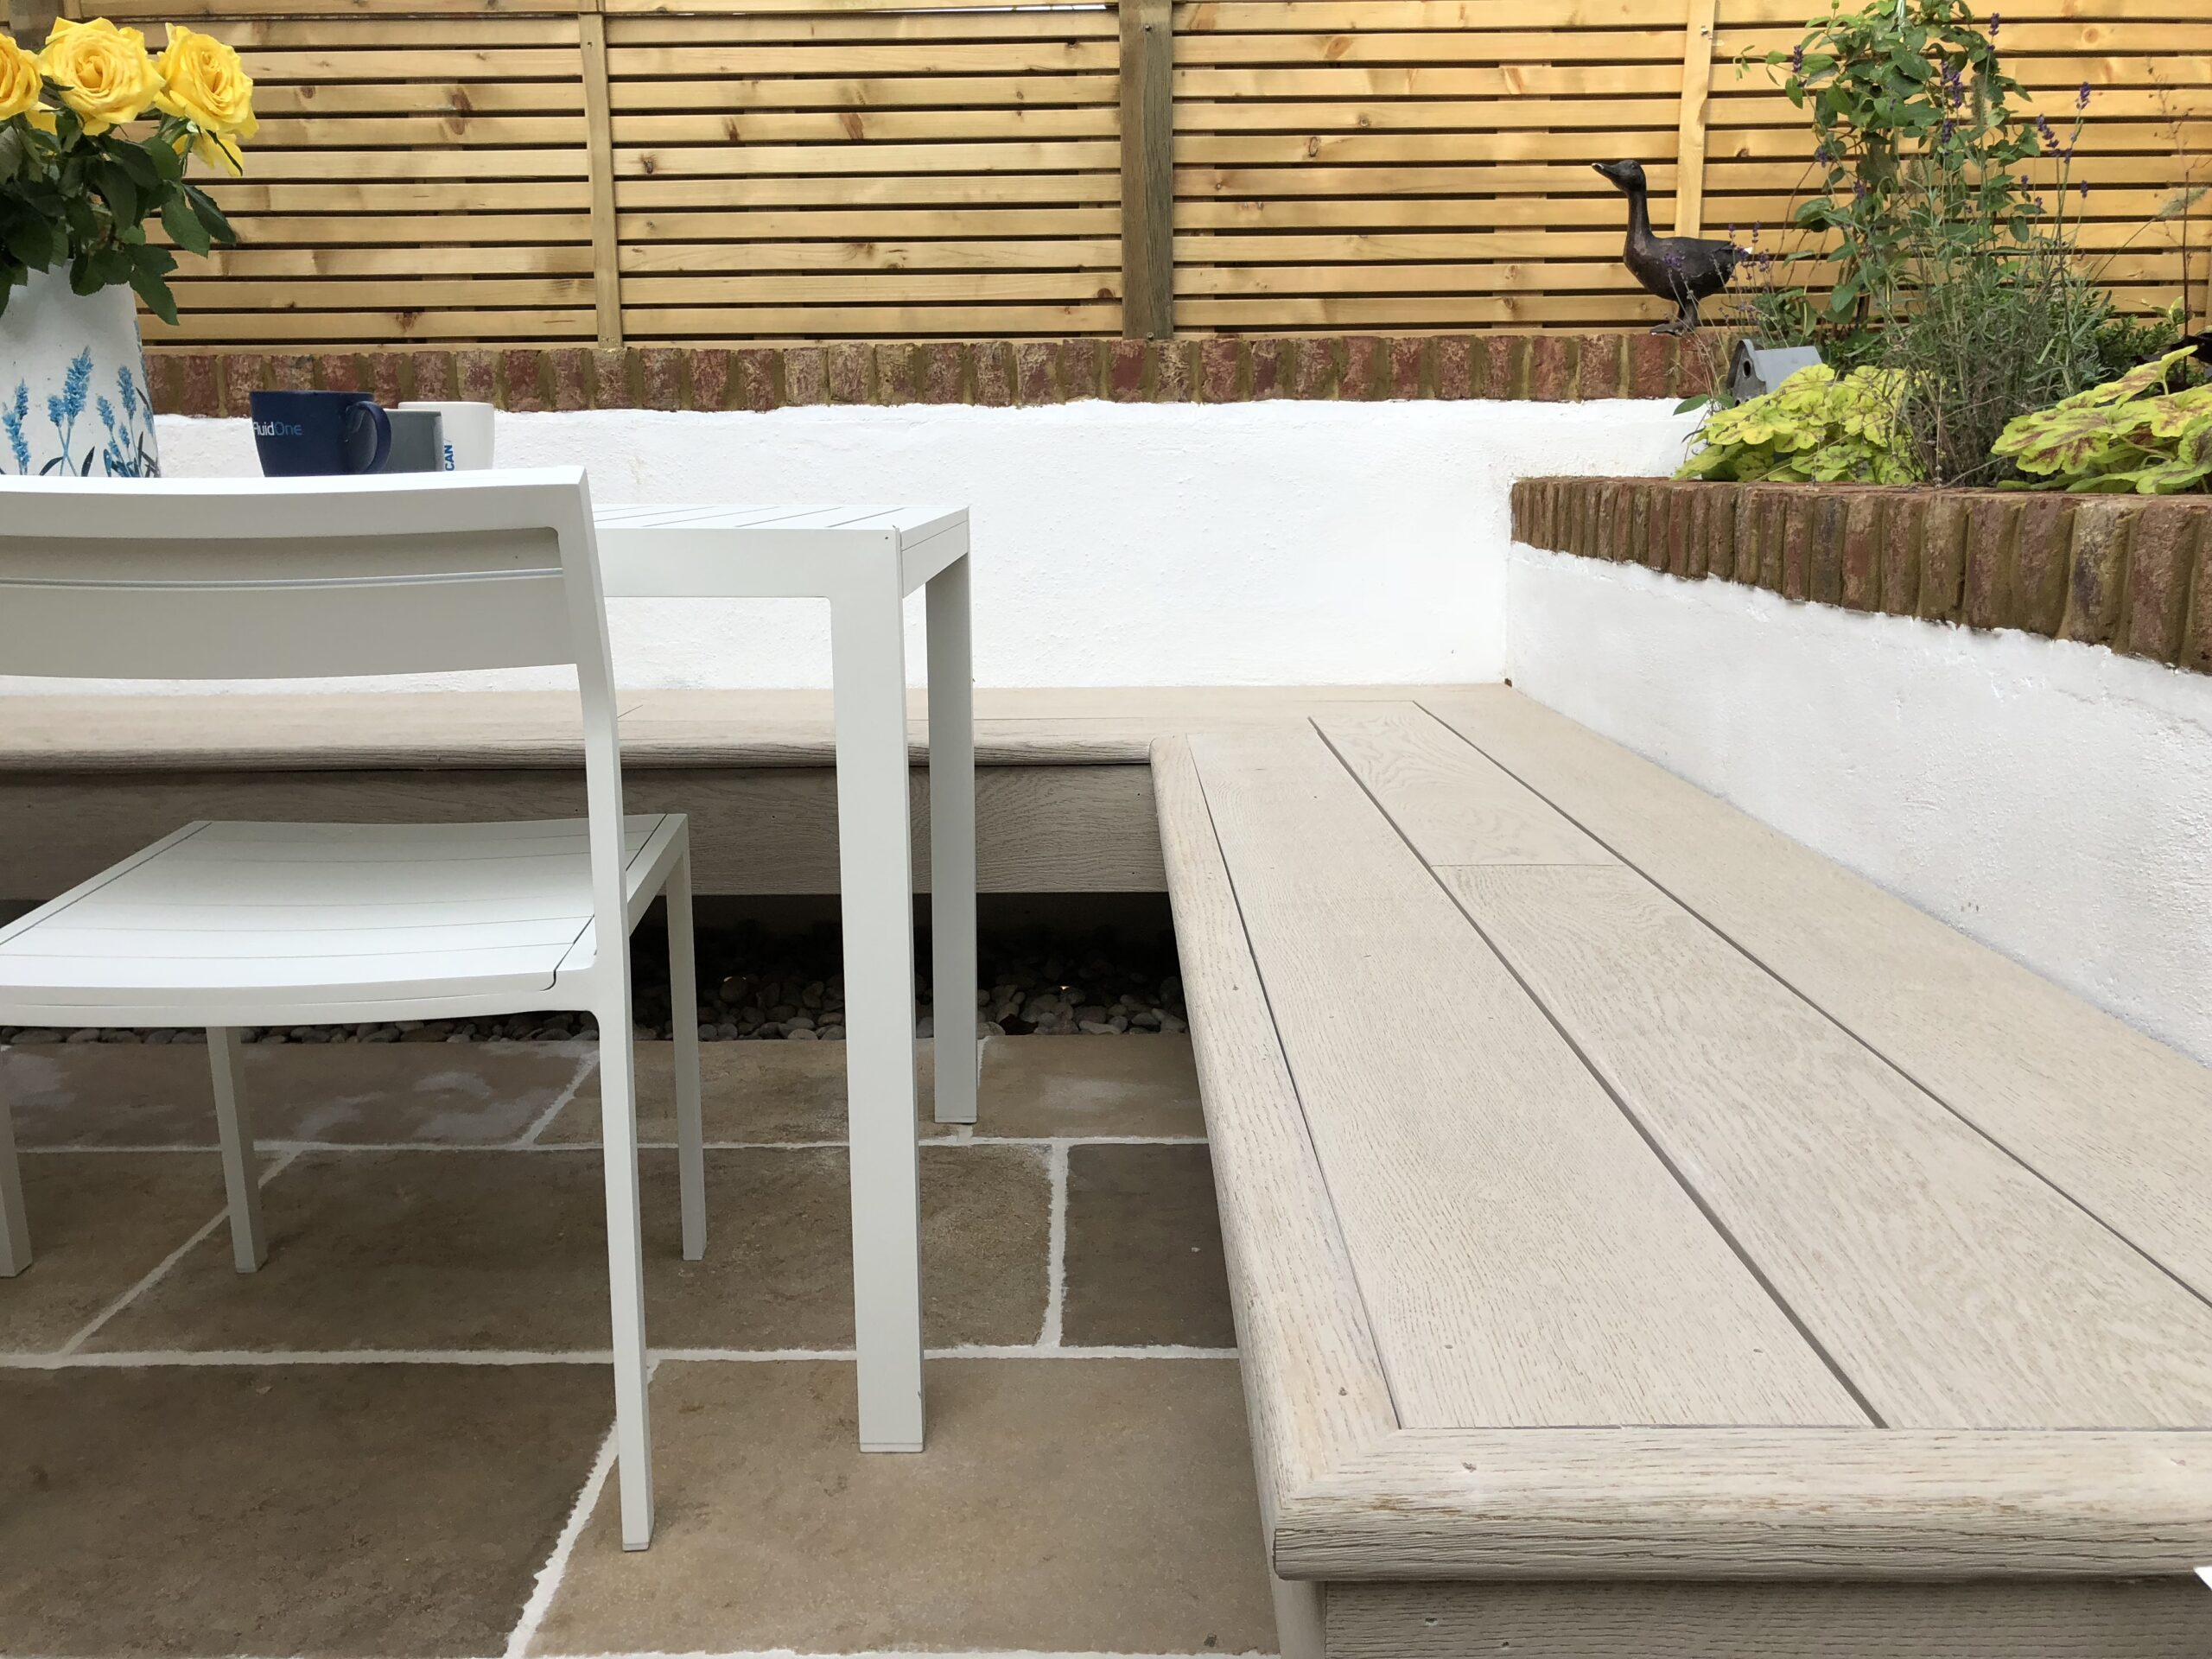 Millboard used as a bench